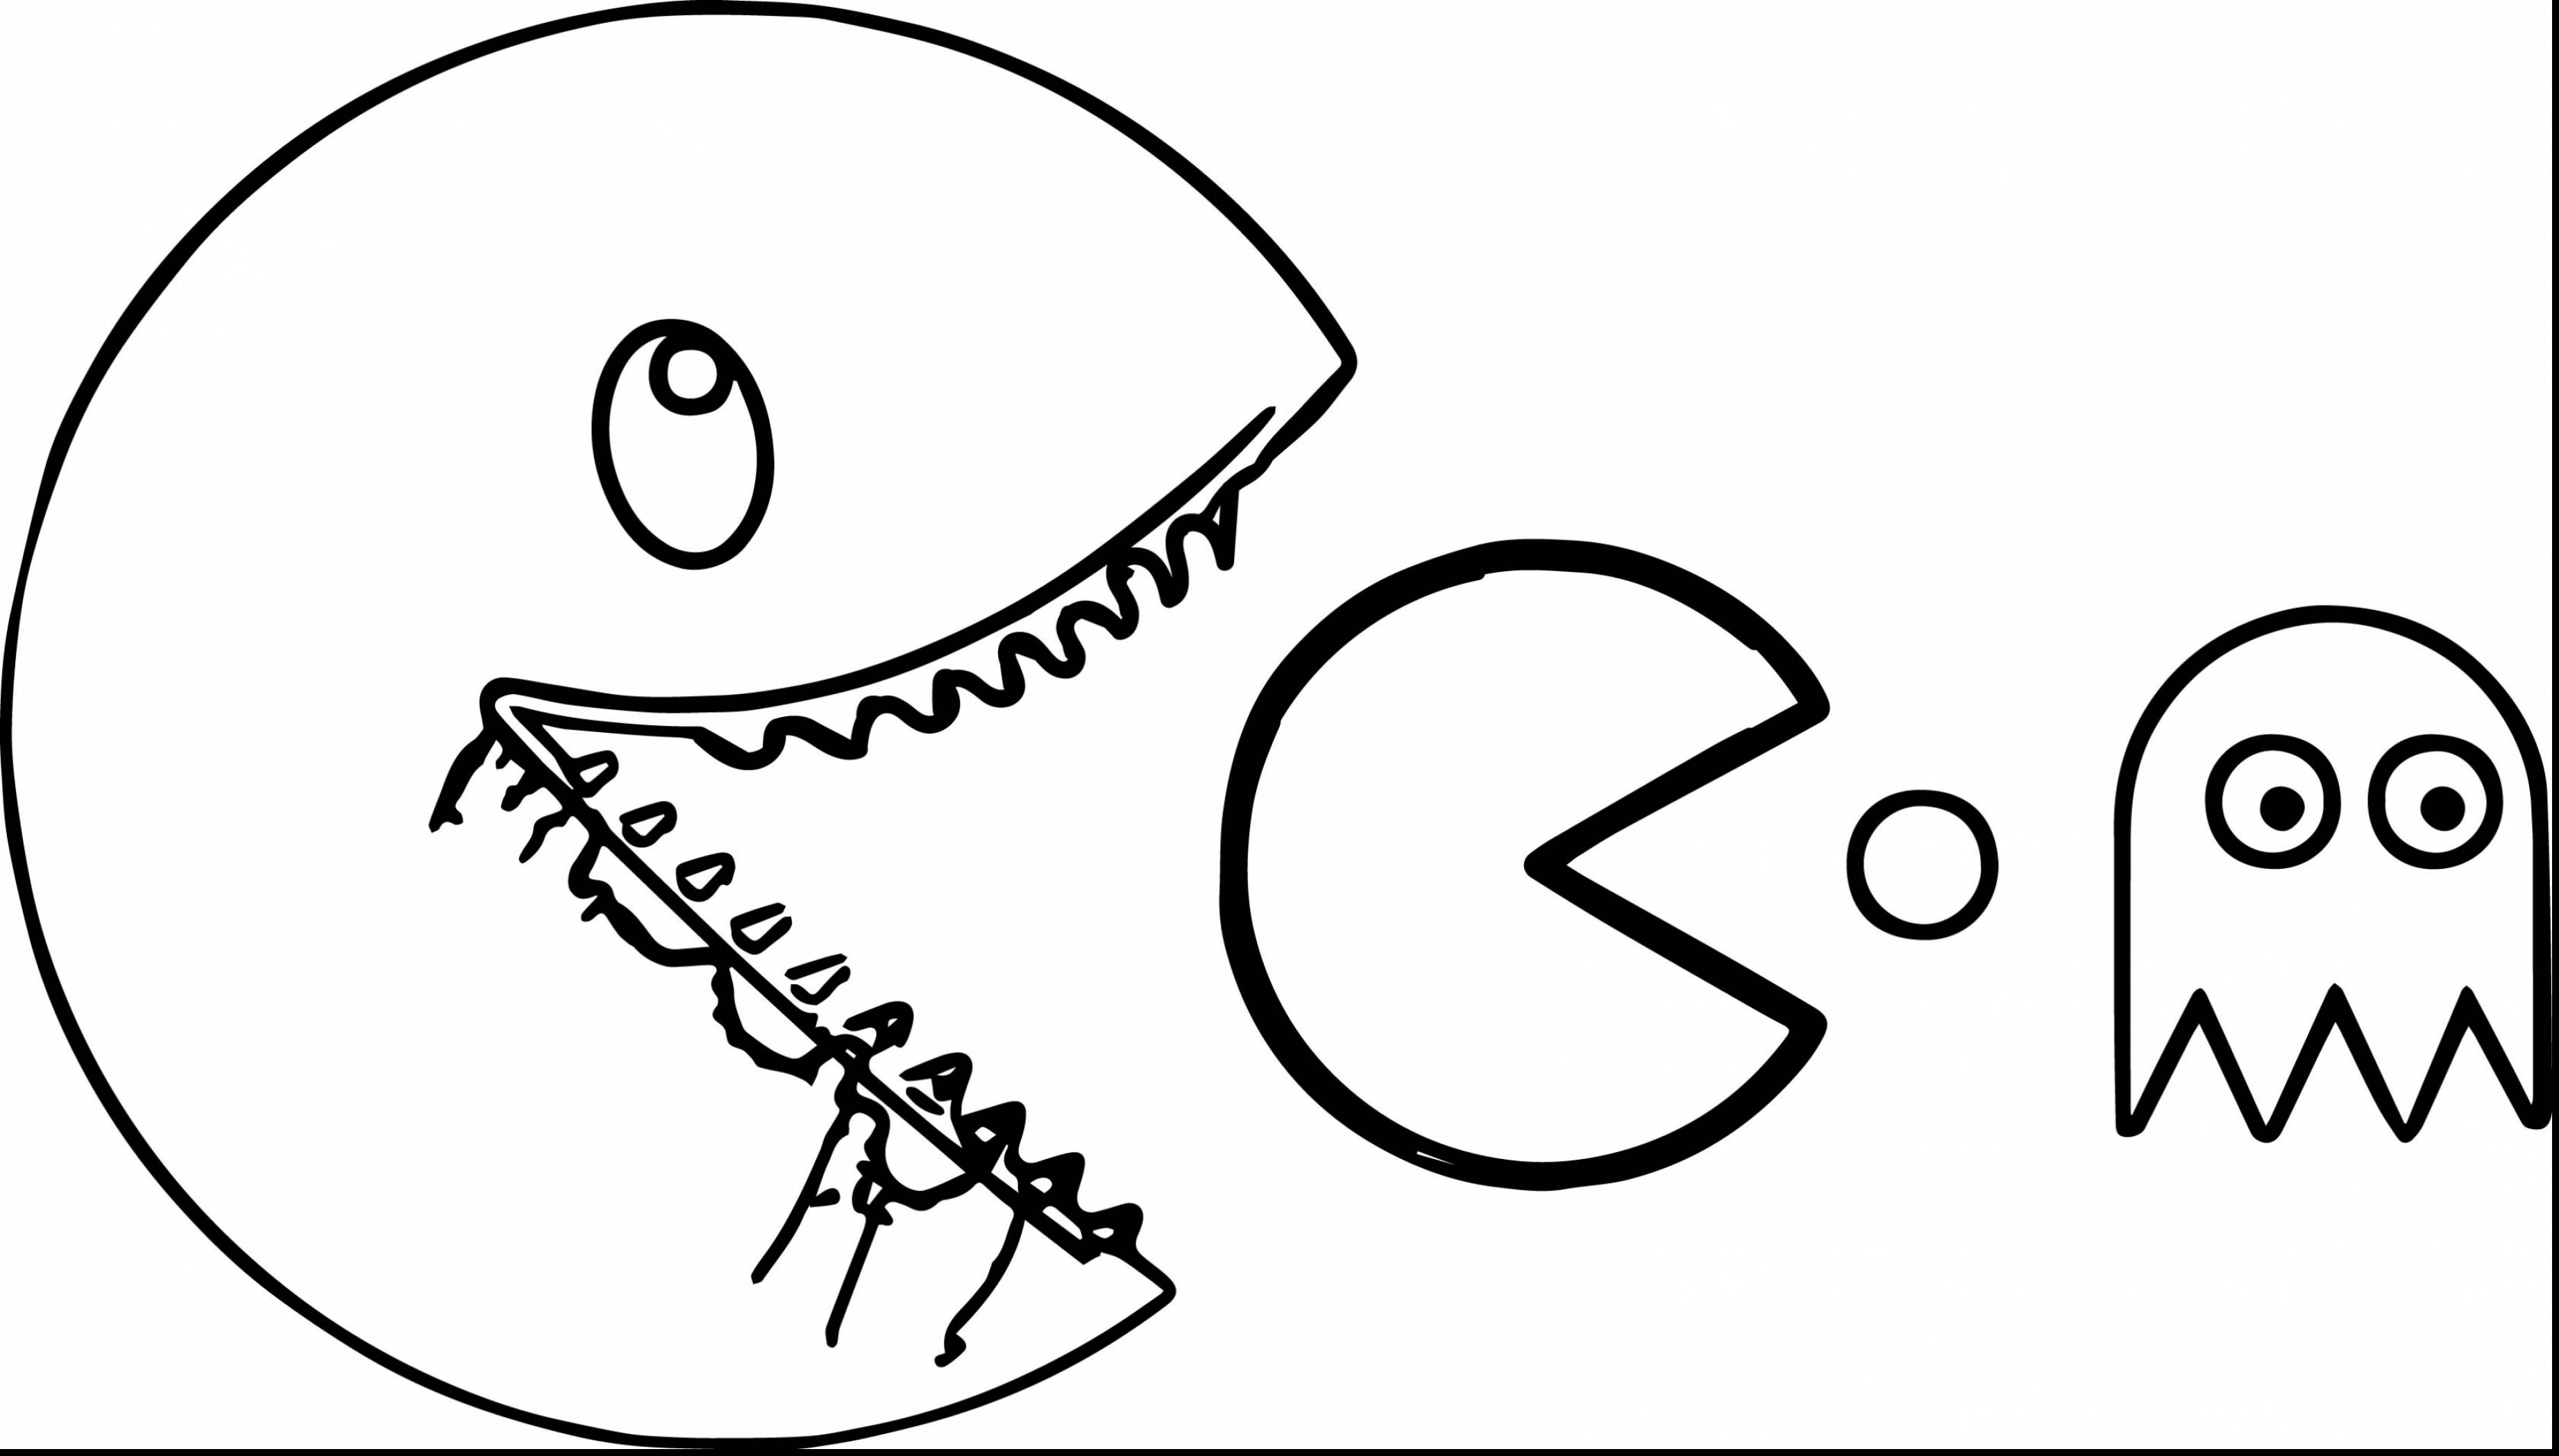 3687x2098 Pacman Coloring Pages Coloringsuite Com Within